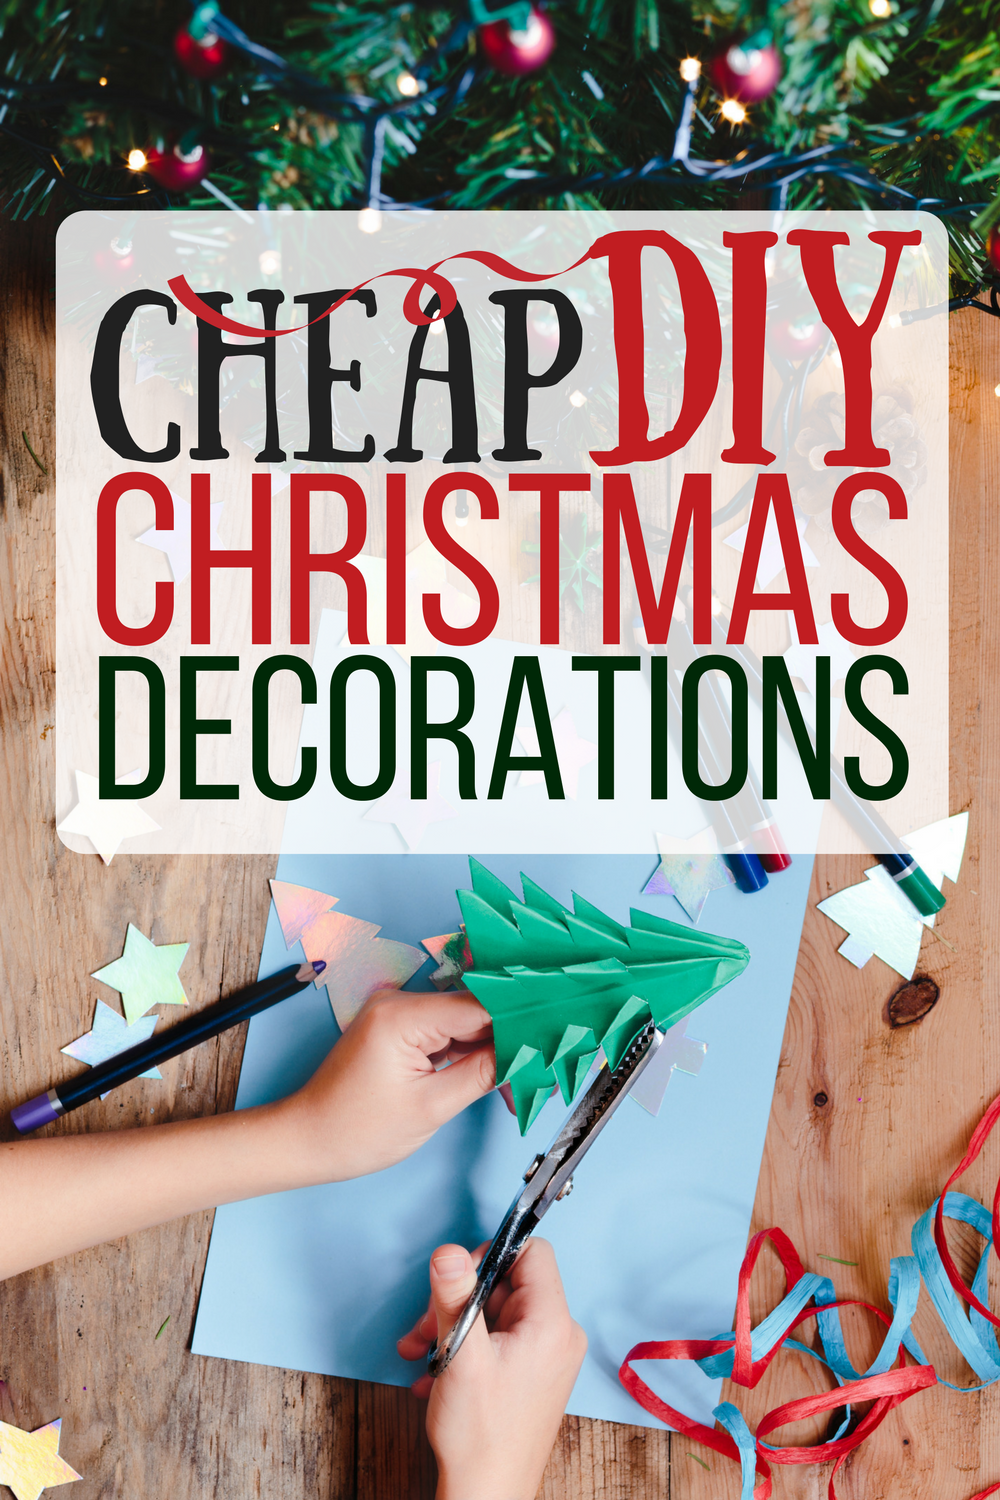 cheap easy diy christmas decorations thanks i was trying to figure out how - Where To Buy Cheap Christmas Decorations